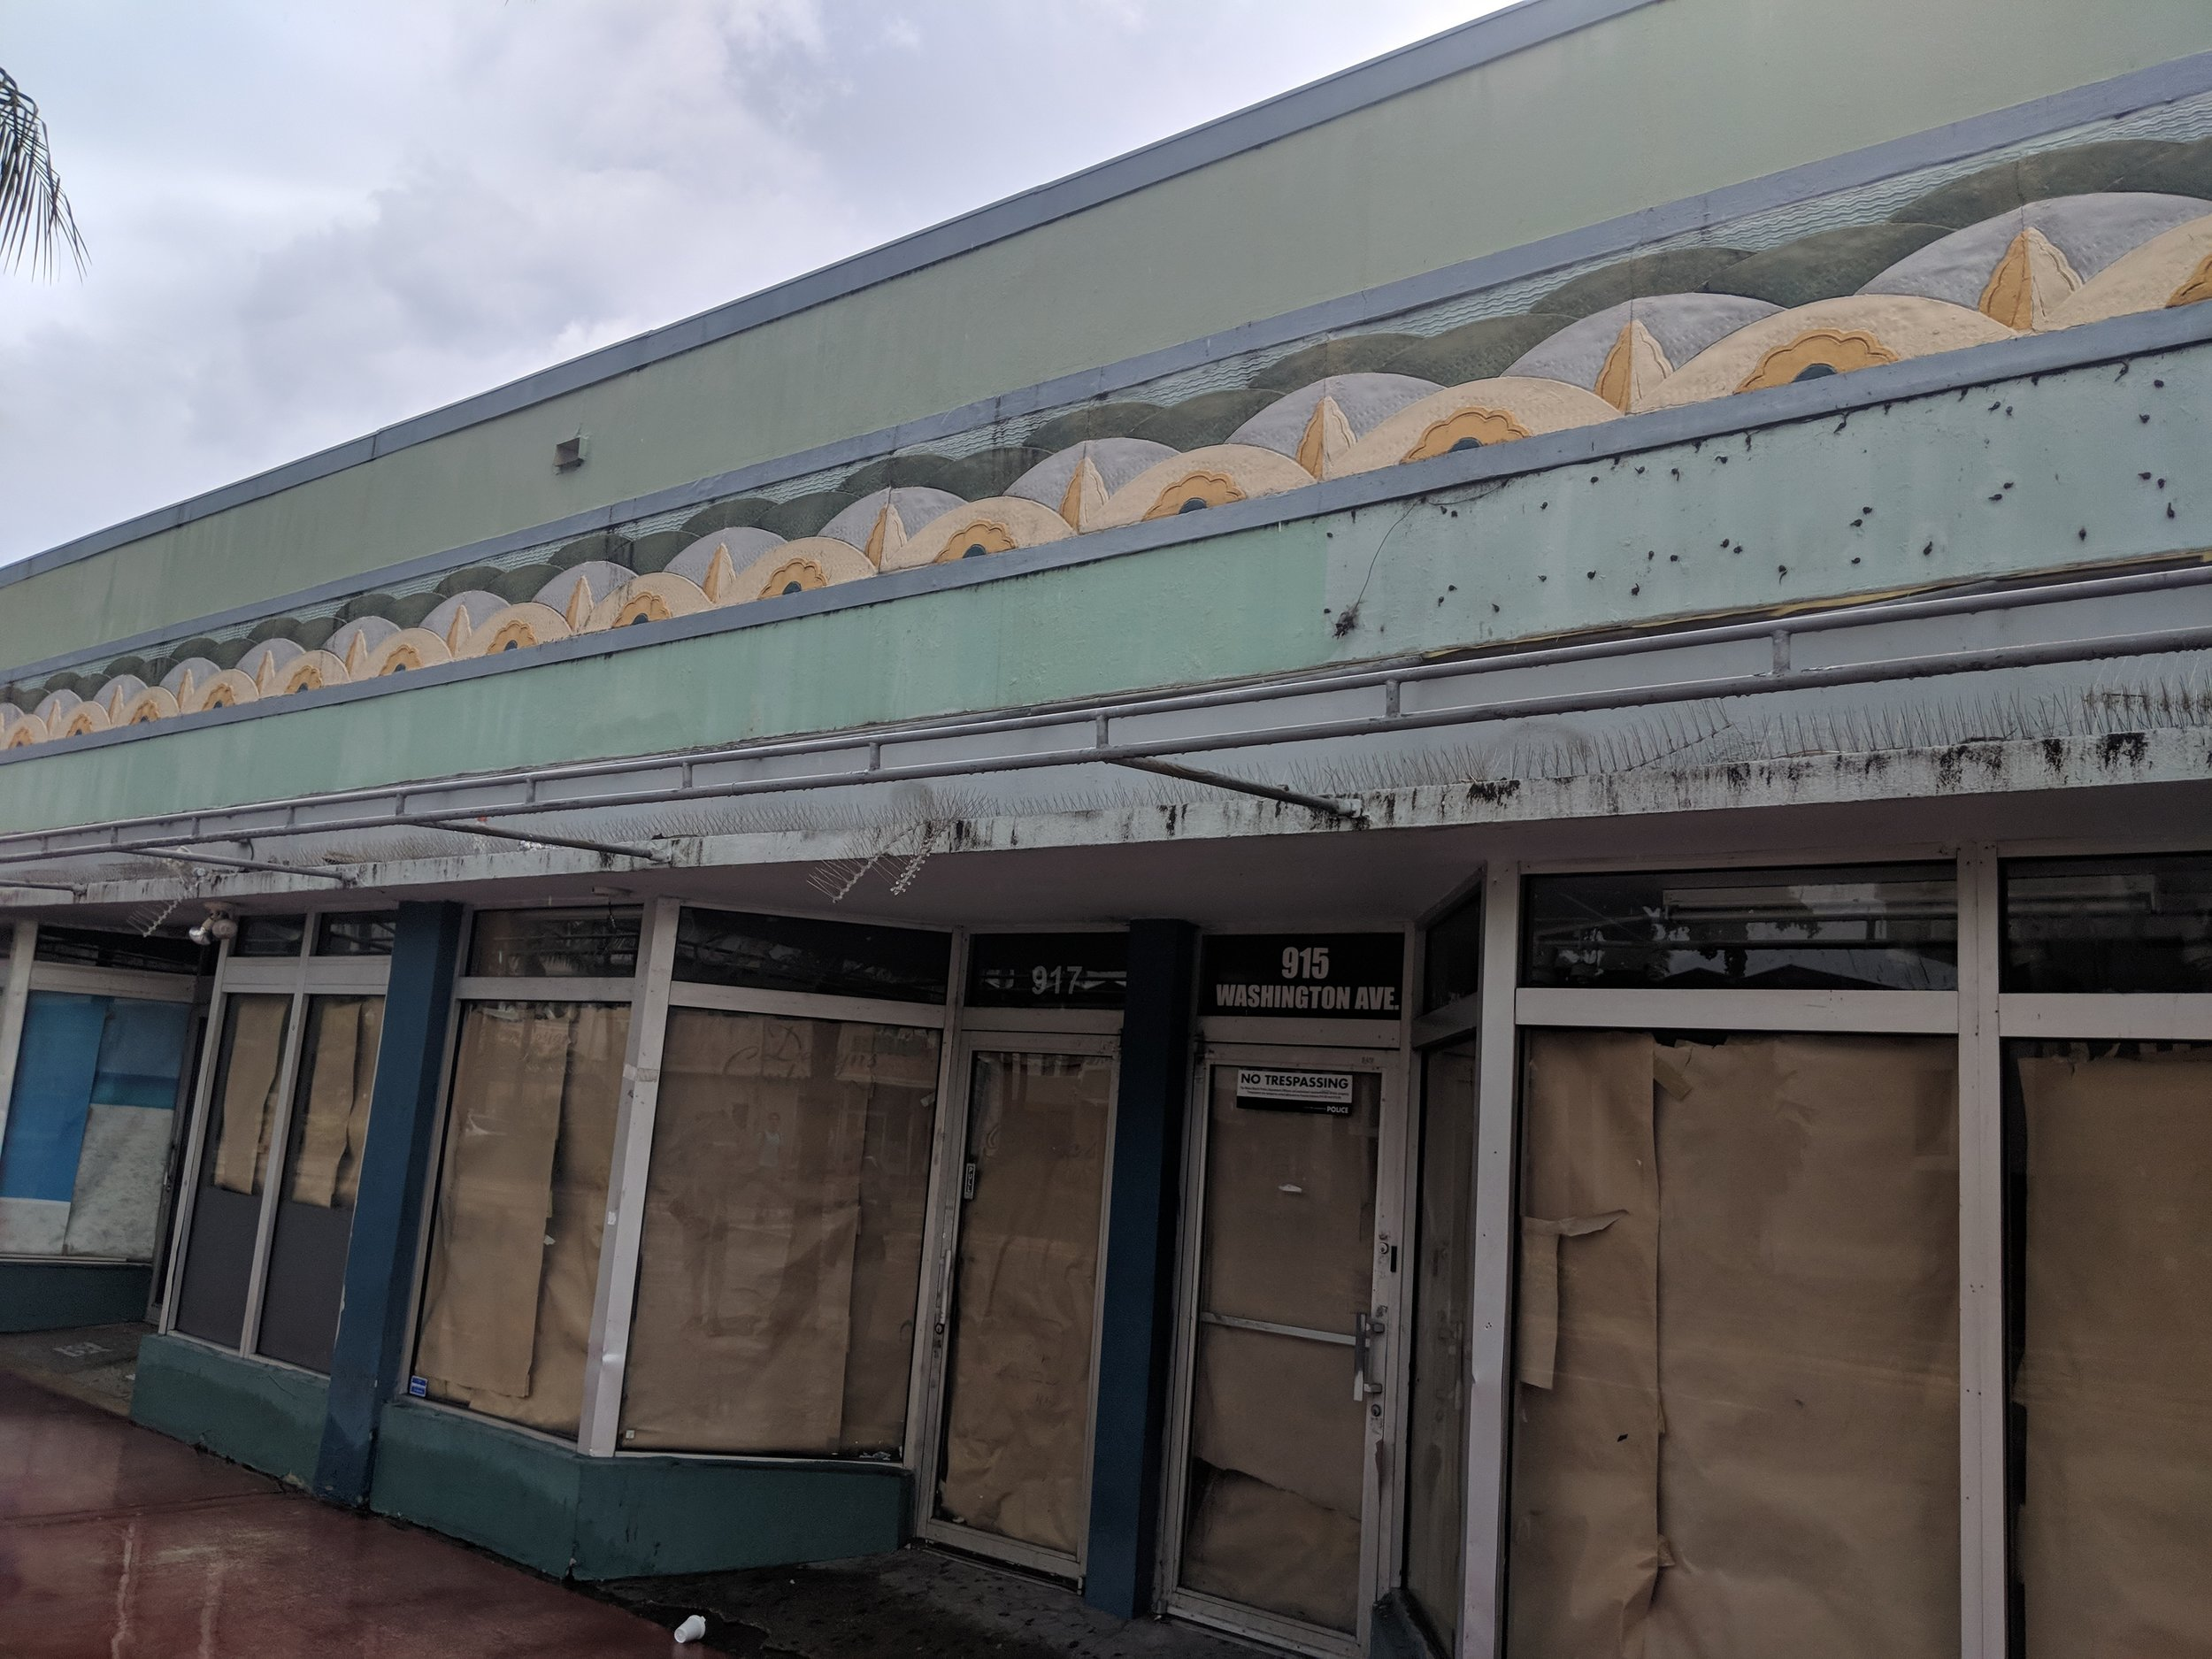 - Another queer-friendly shop bites the dust. Leonard Horowitz's iconic colour palette still shines proudly however.